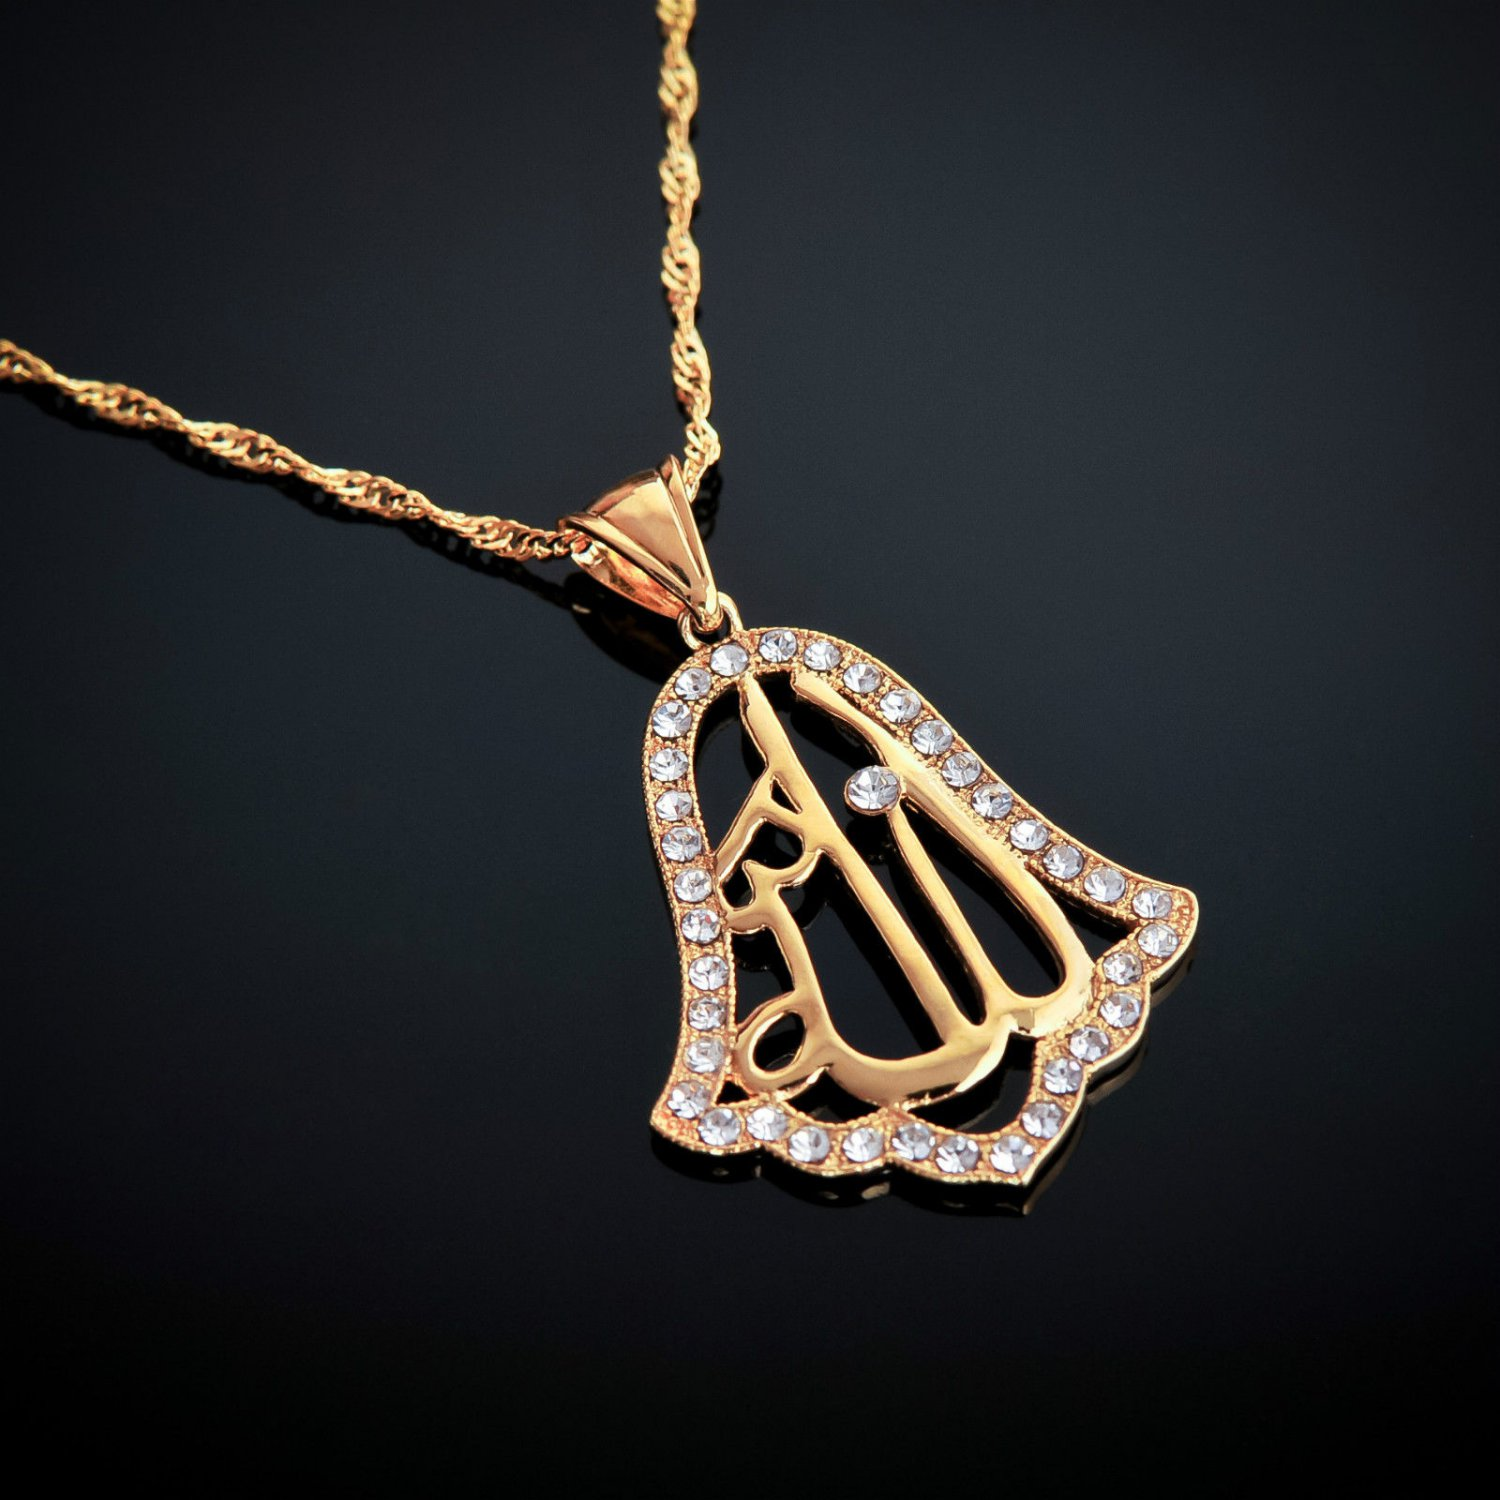 Fashion 18k gold plated Allah Islamic Pendant & chain ! Islam Jewelry & Gift